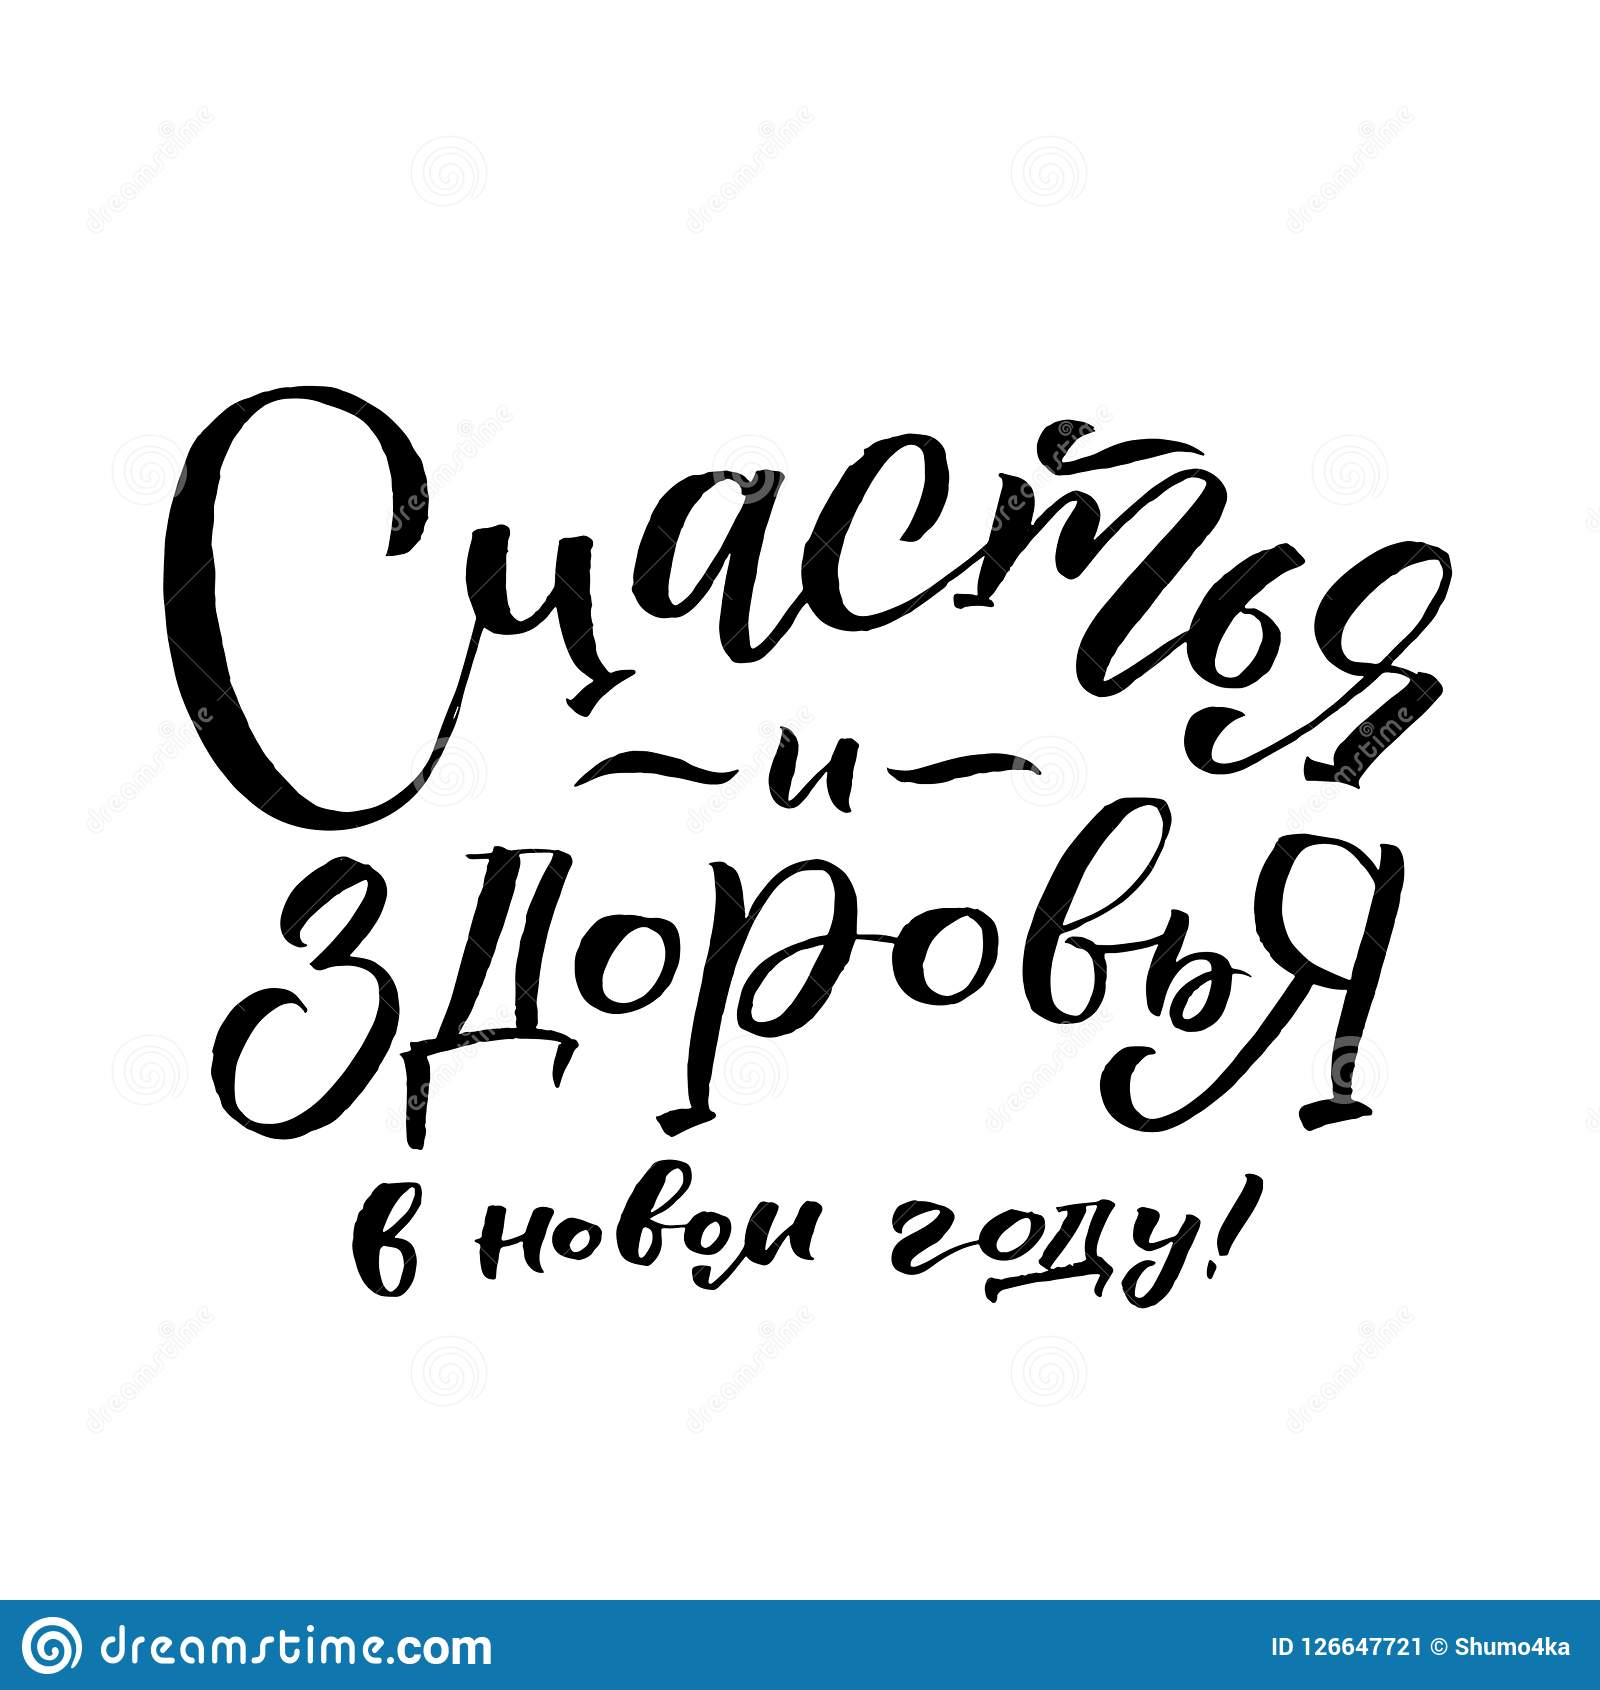 I wish you happy and health happy new year russian calligraphy happy new year russian calligraphy greeting card m4hsunfo